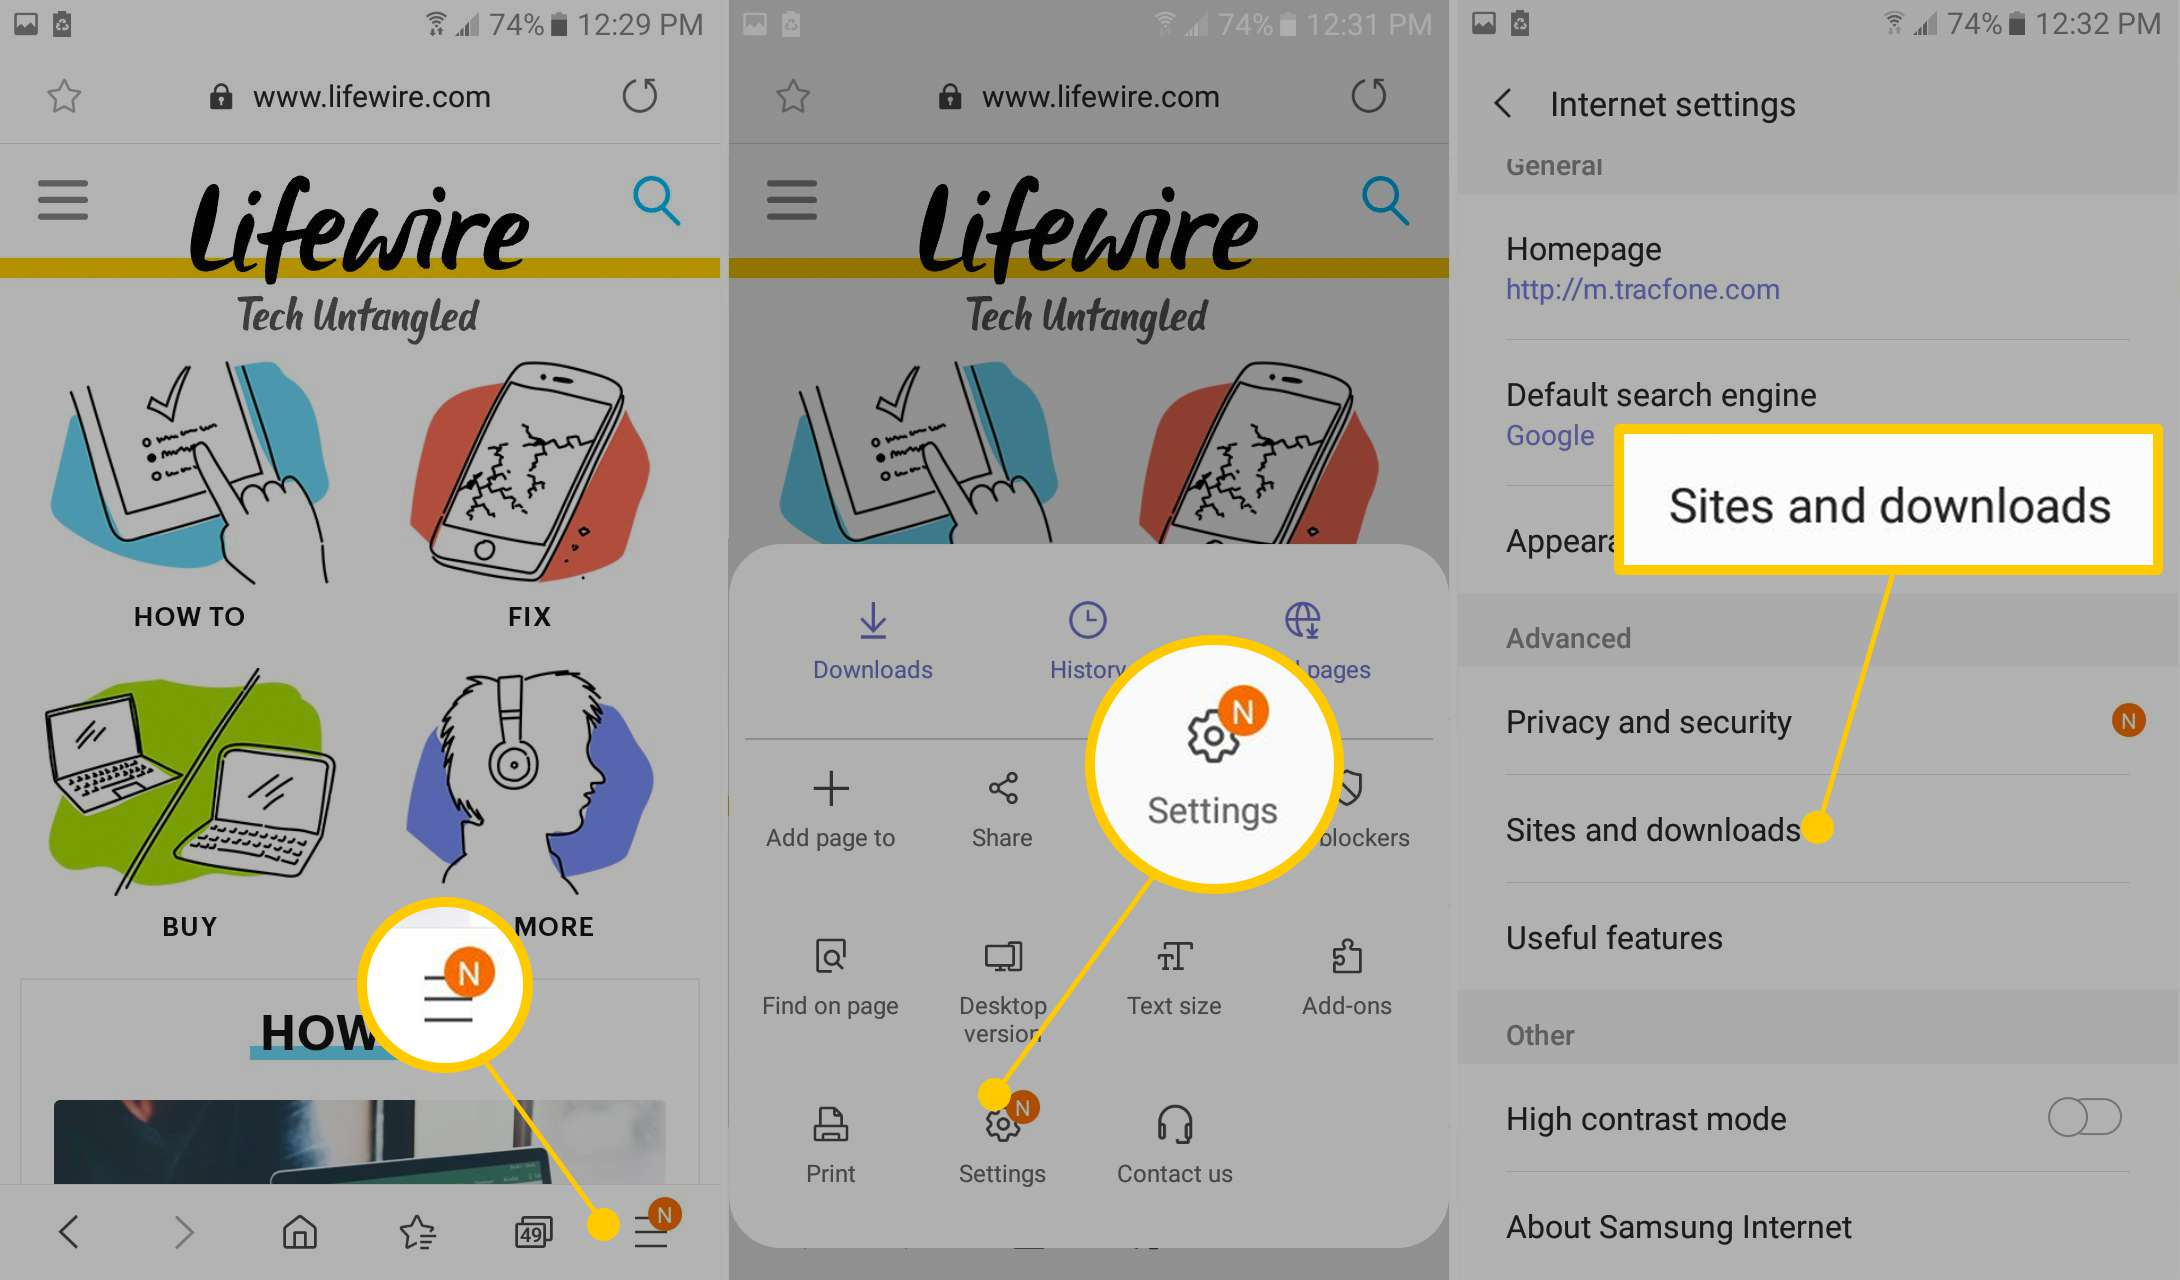 Smasung Internet browser menu, Setting icon, Sites and downloads button